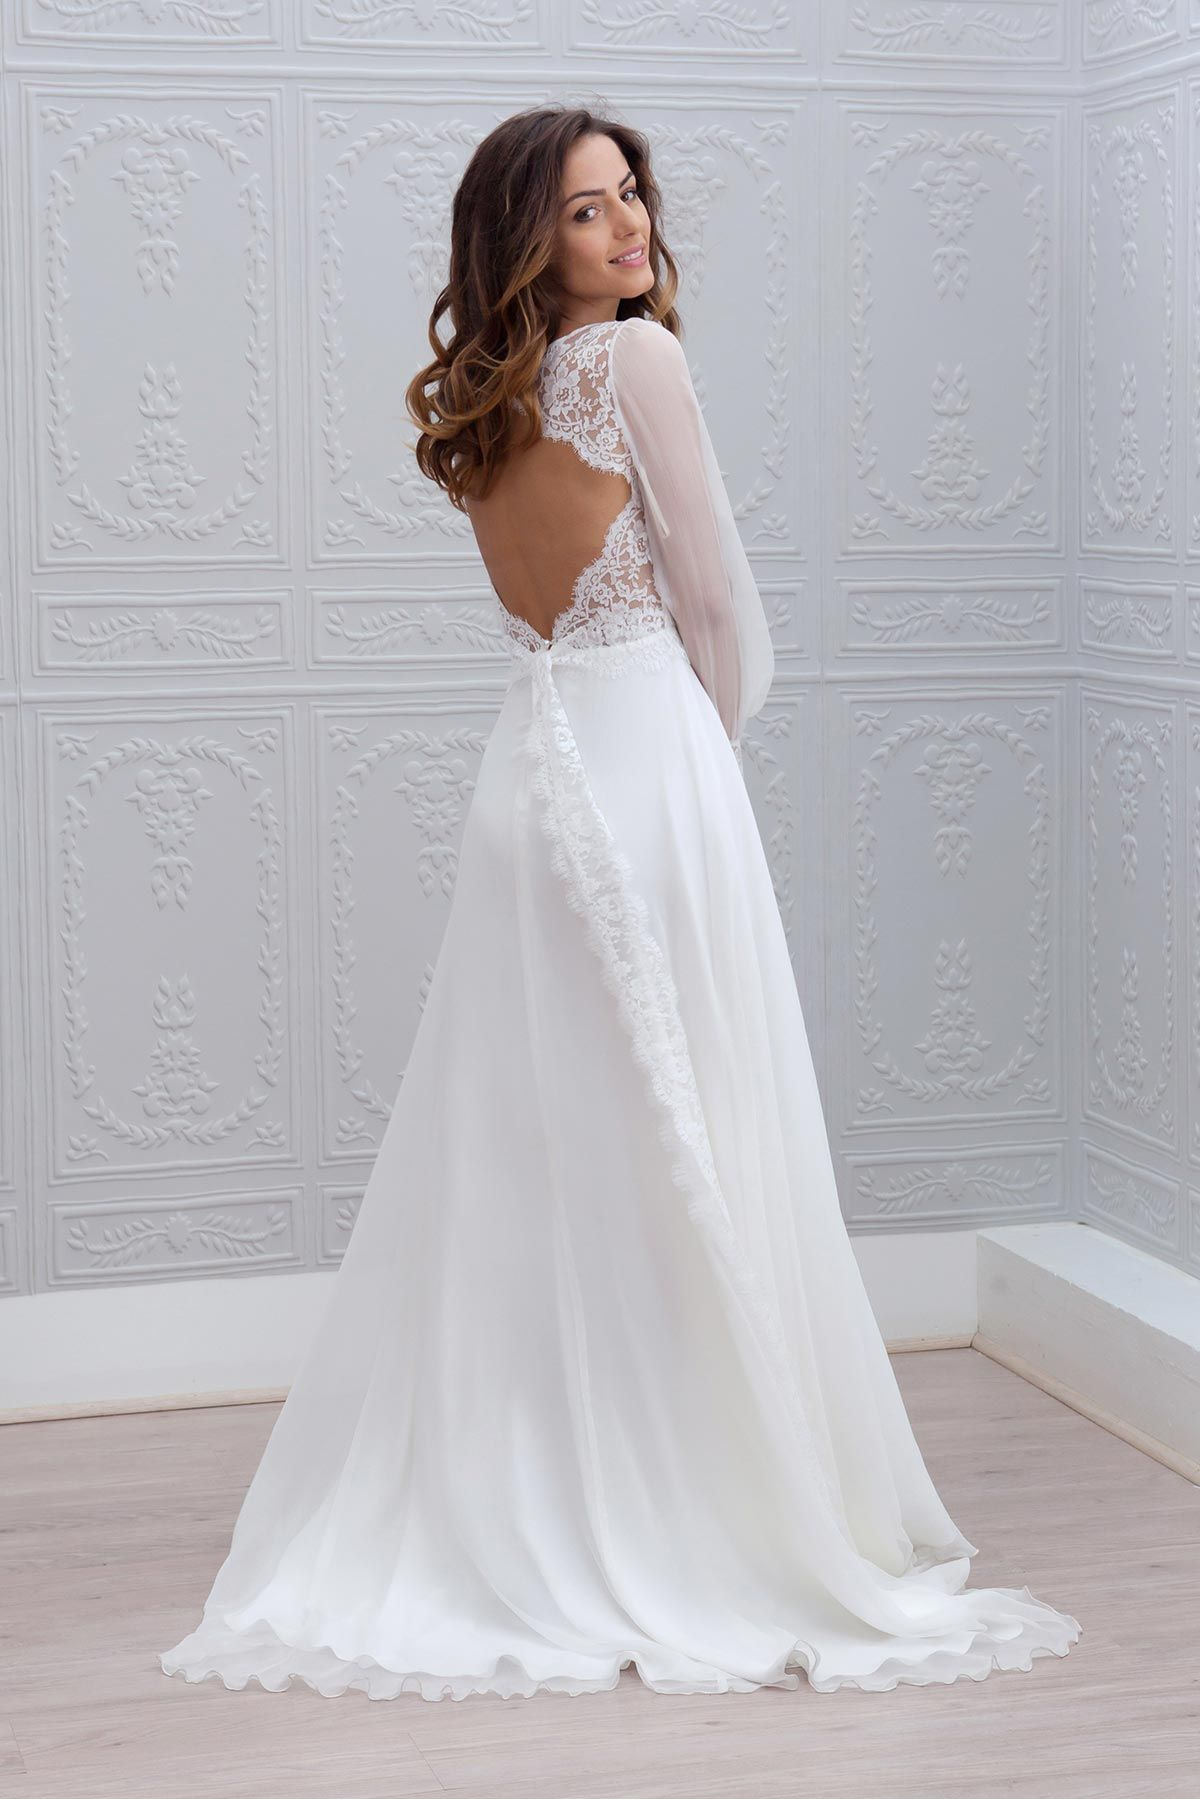 Angelique marie laporte wedding dresses pinterest wedding